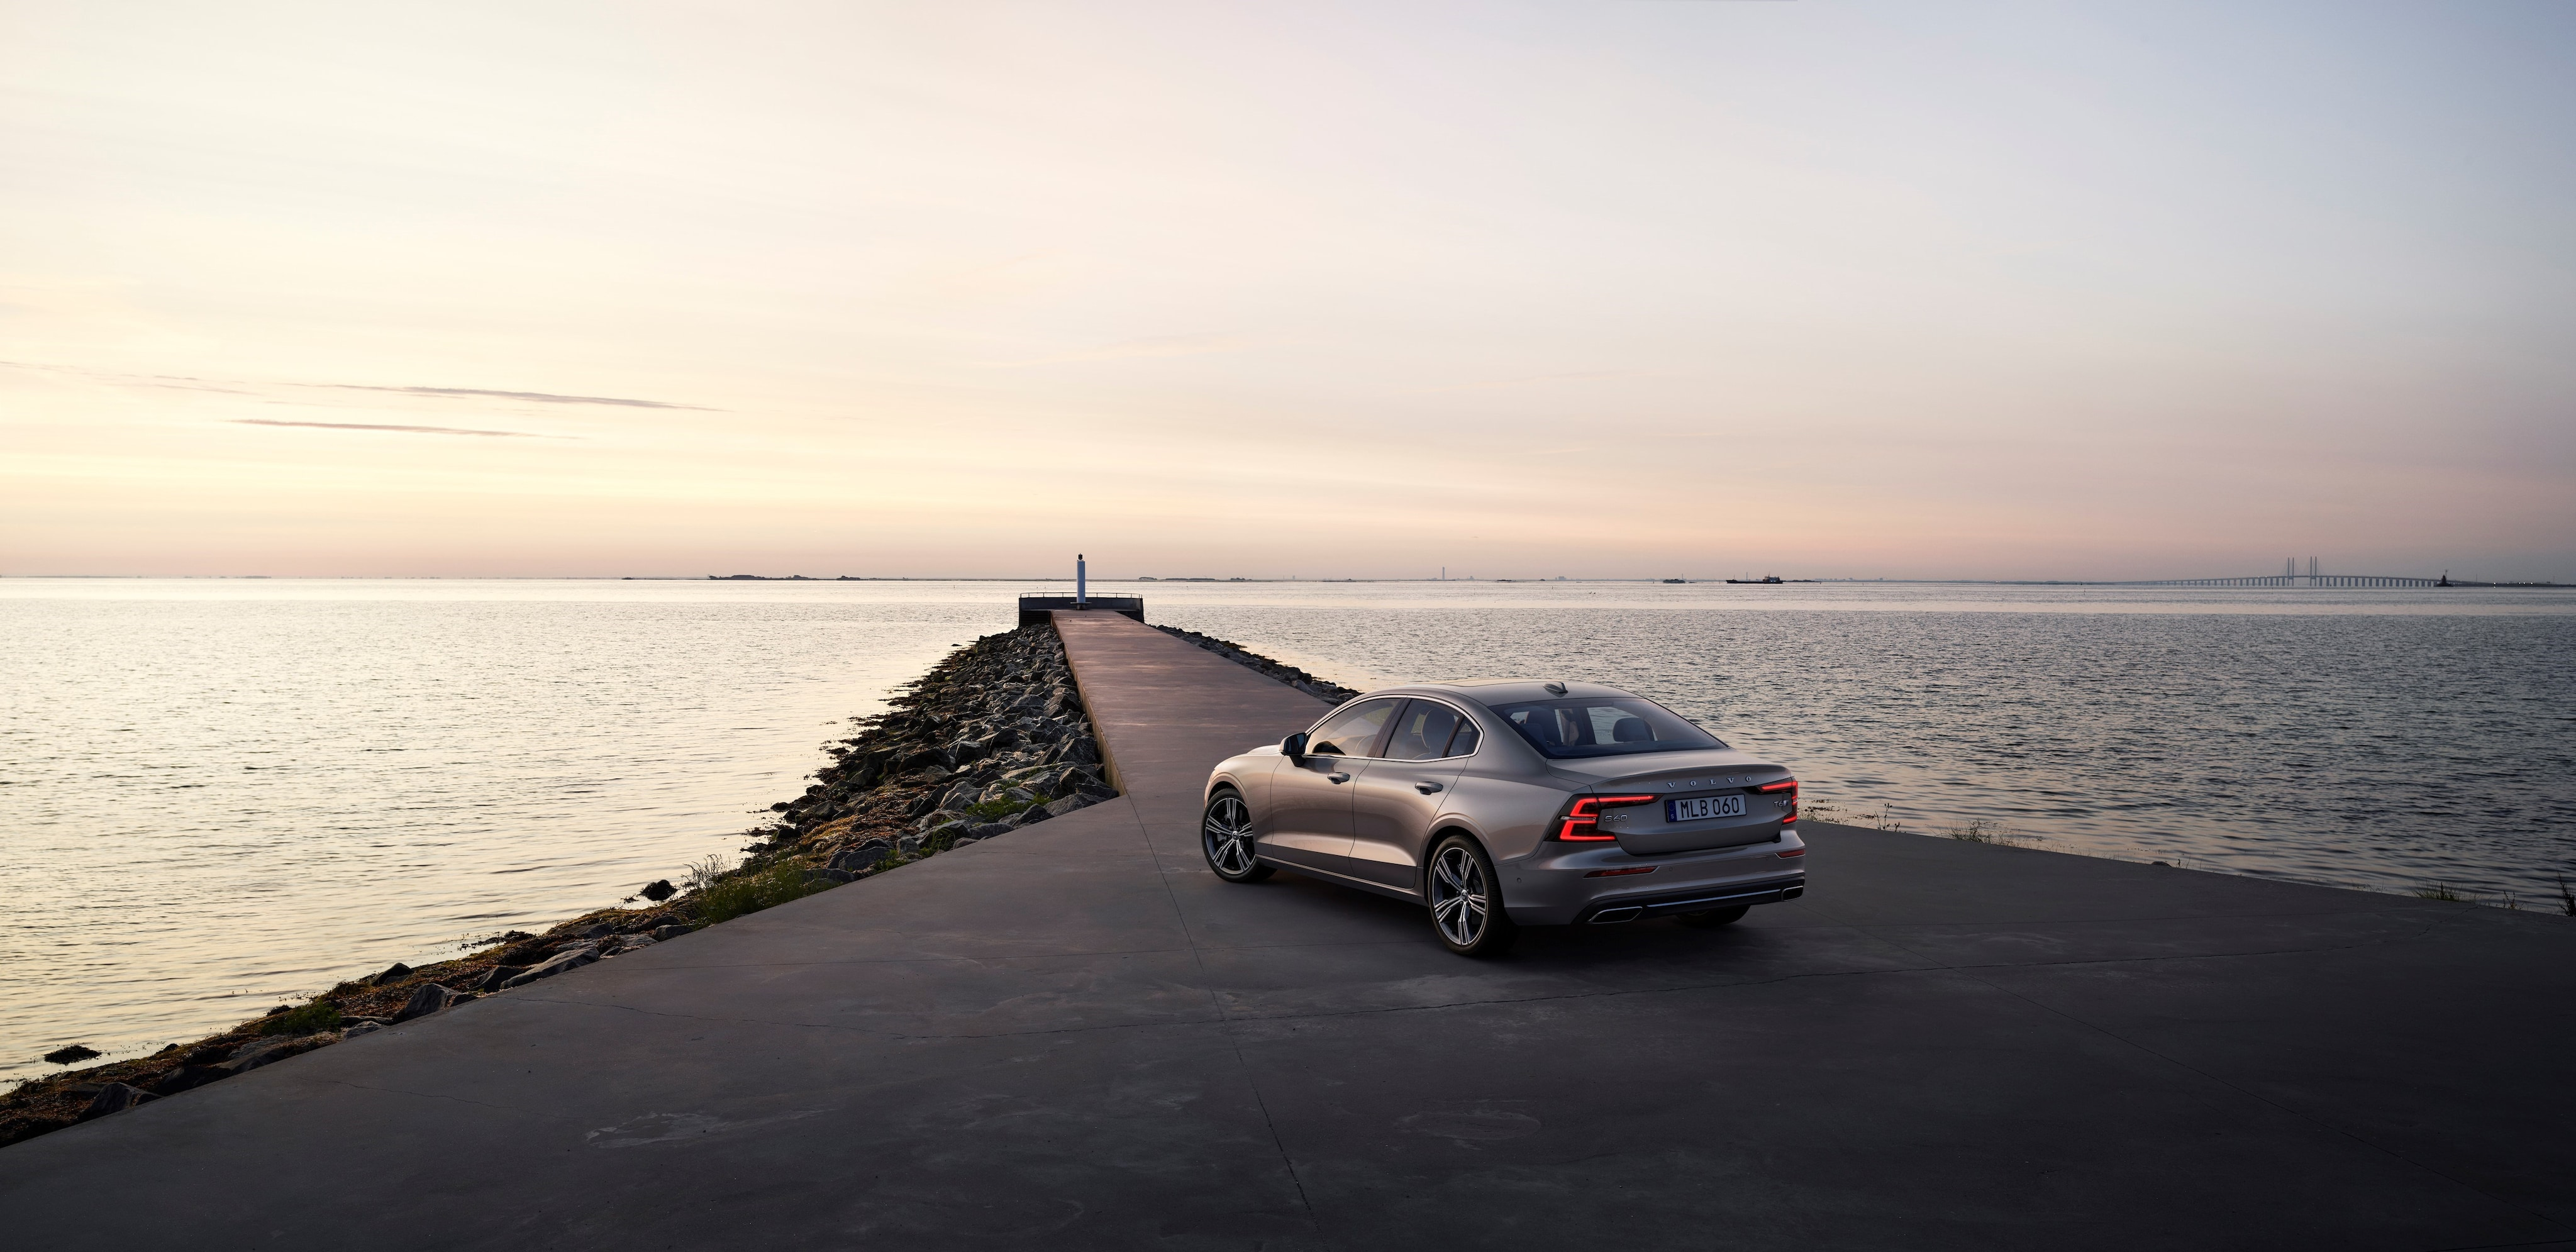 Volvo Car Usa Announces Model Year 2019 S60 Pricing Care By Volvo Subscription Plan Culver City Volvo Cars